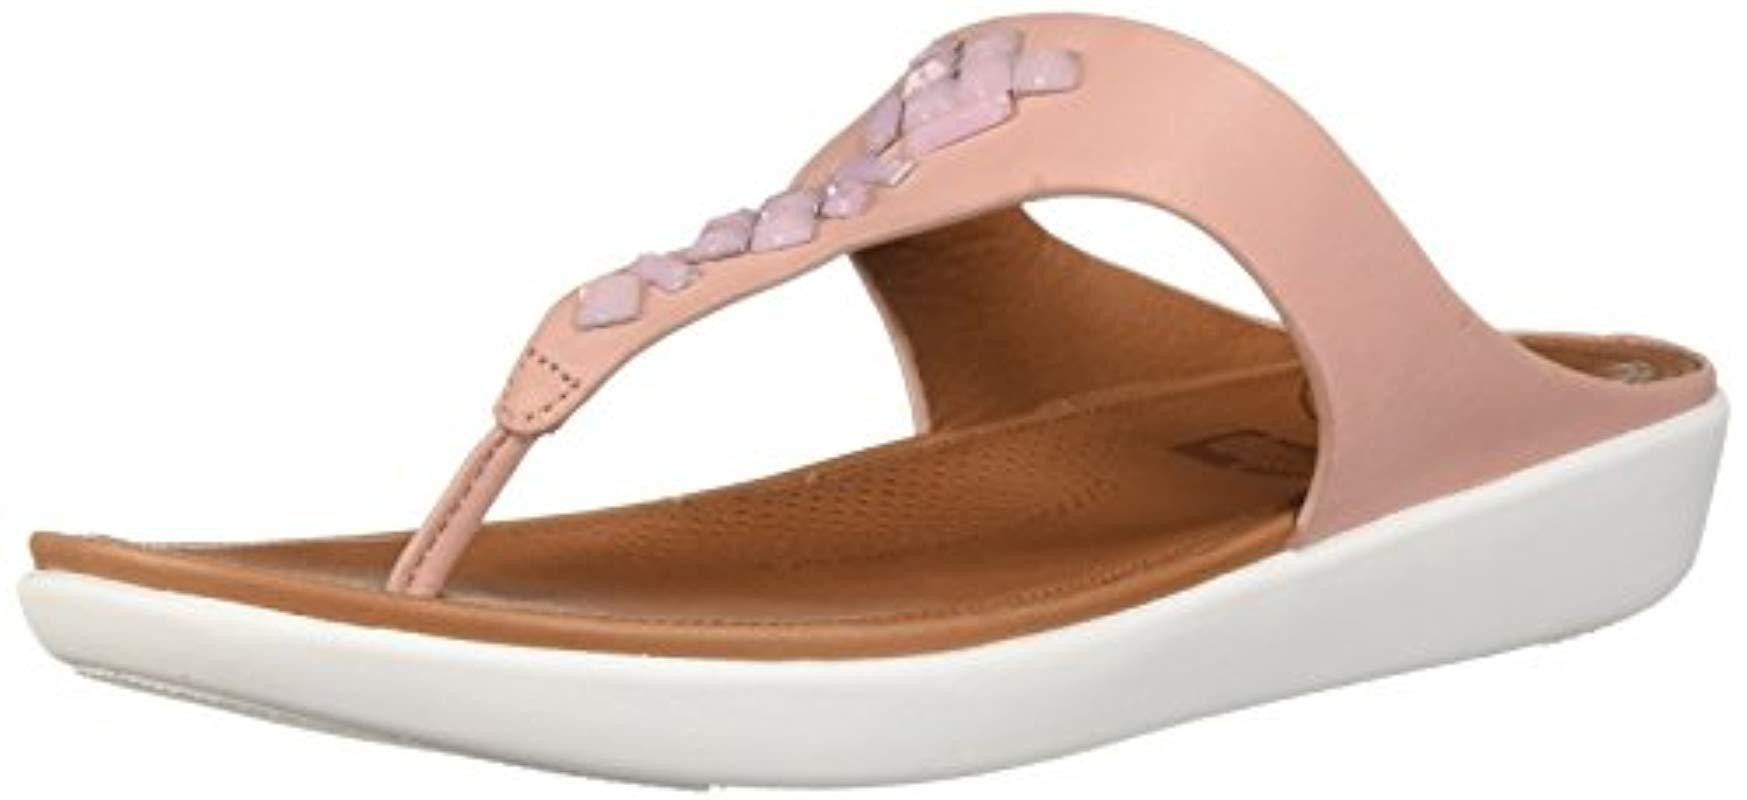 317272d40f47 Fitflop. Women s Brown Banda Leather Toe-thong Sandals-crystal Slide